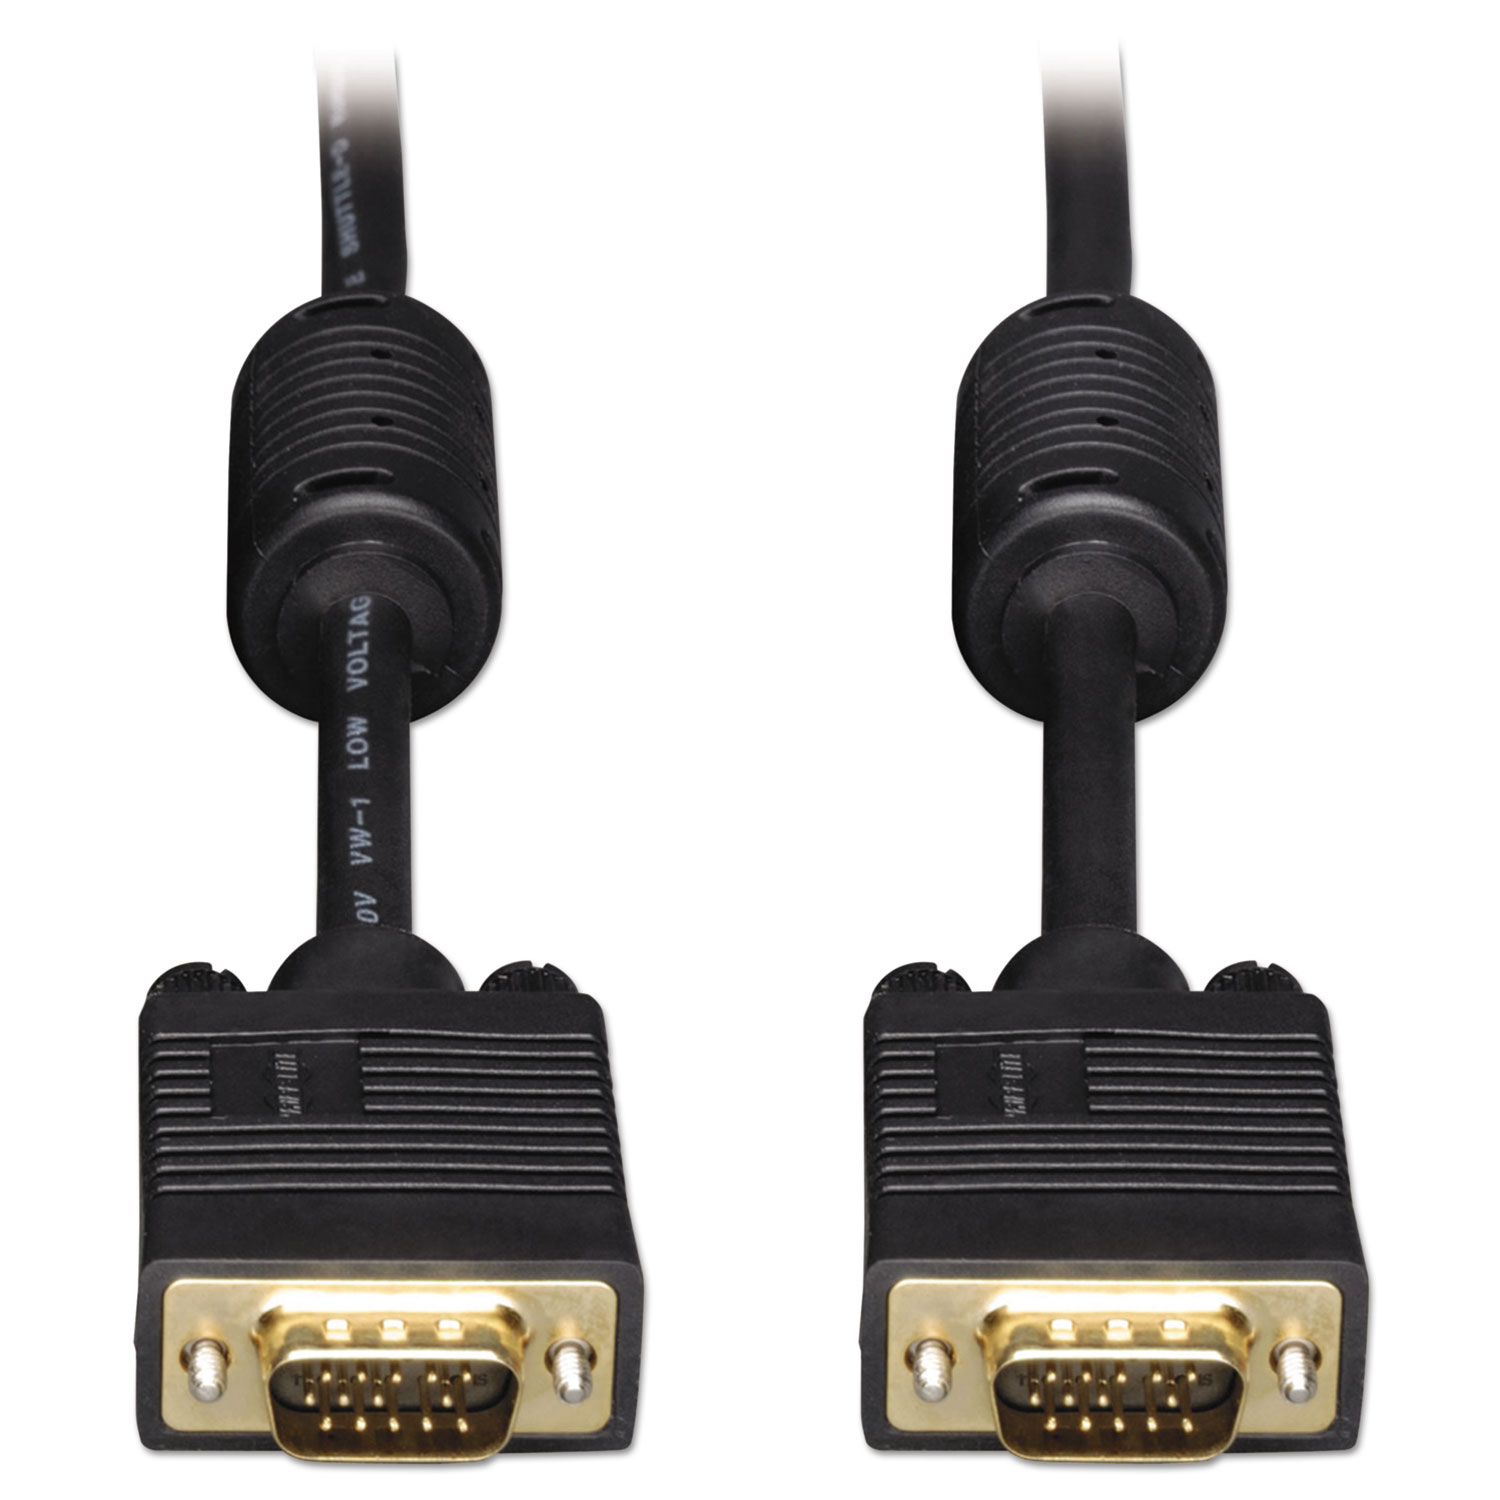 VGA Coaxial High-Resolution Monitor Cable with RGB Coaxial (HD15 M/M), 50 ft.